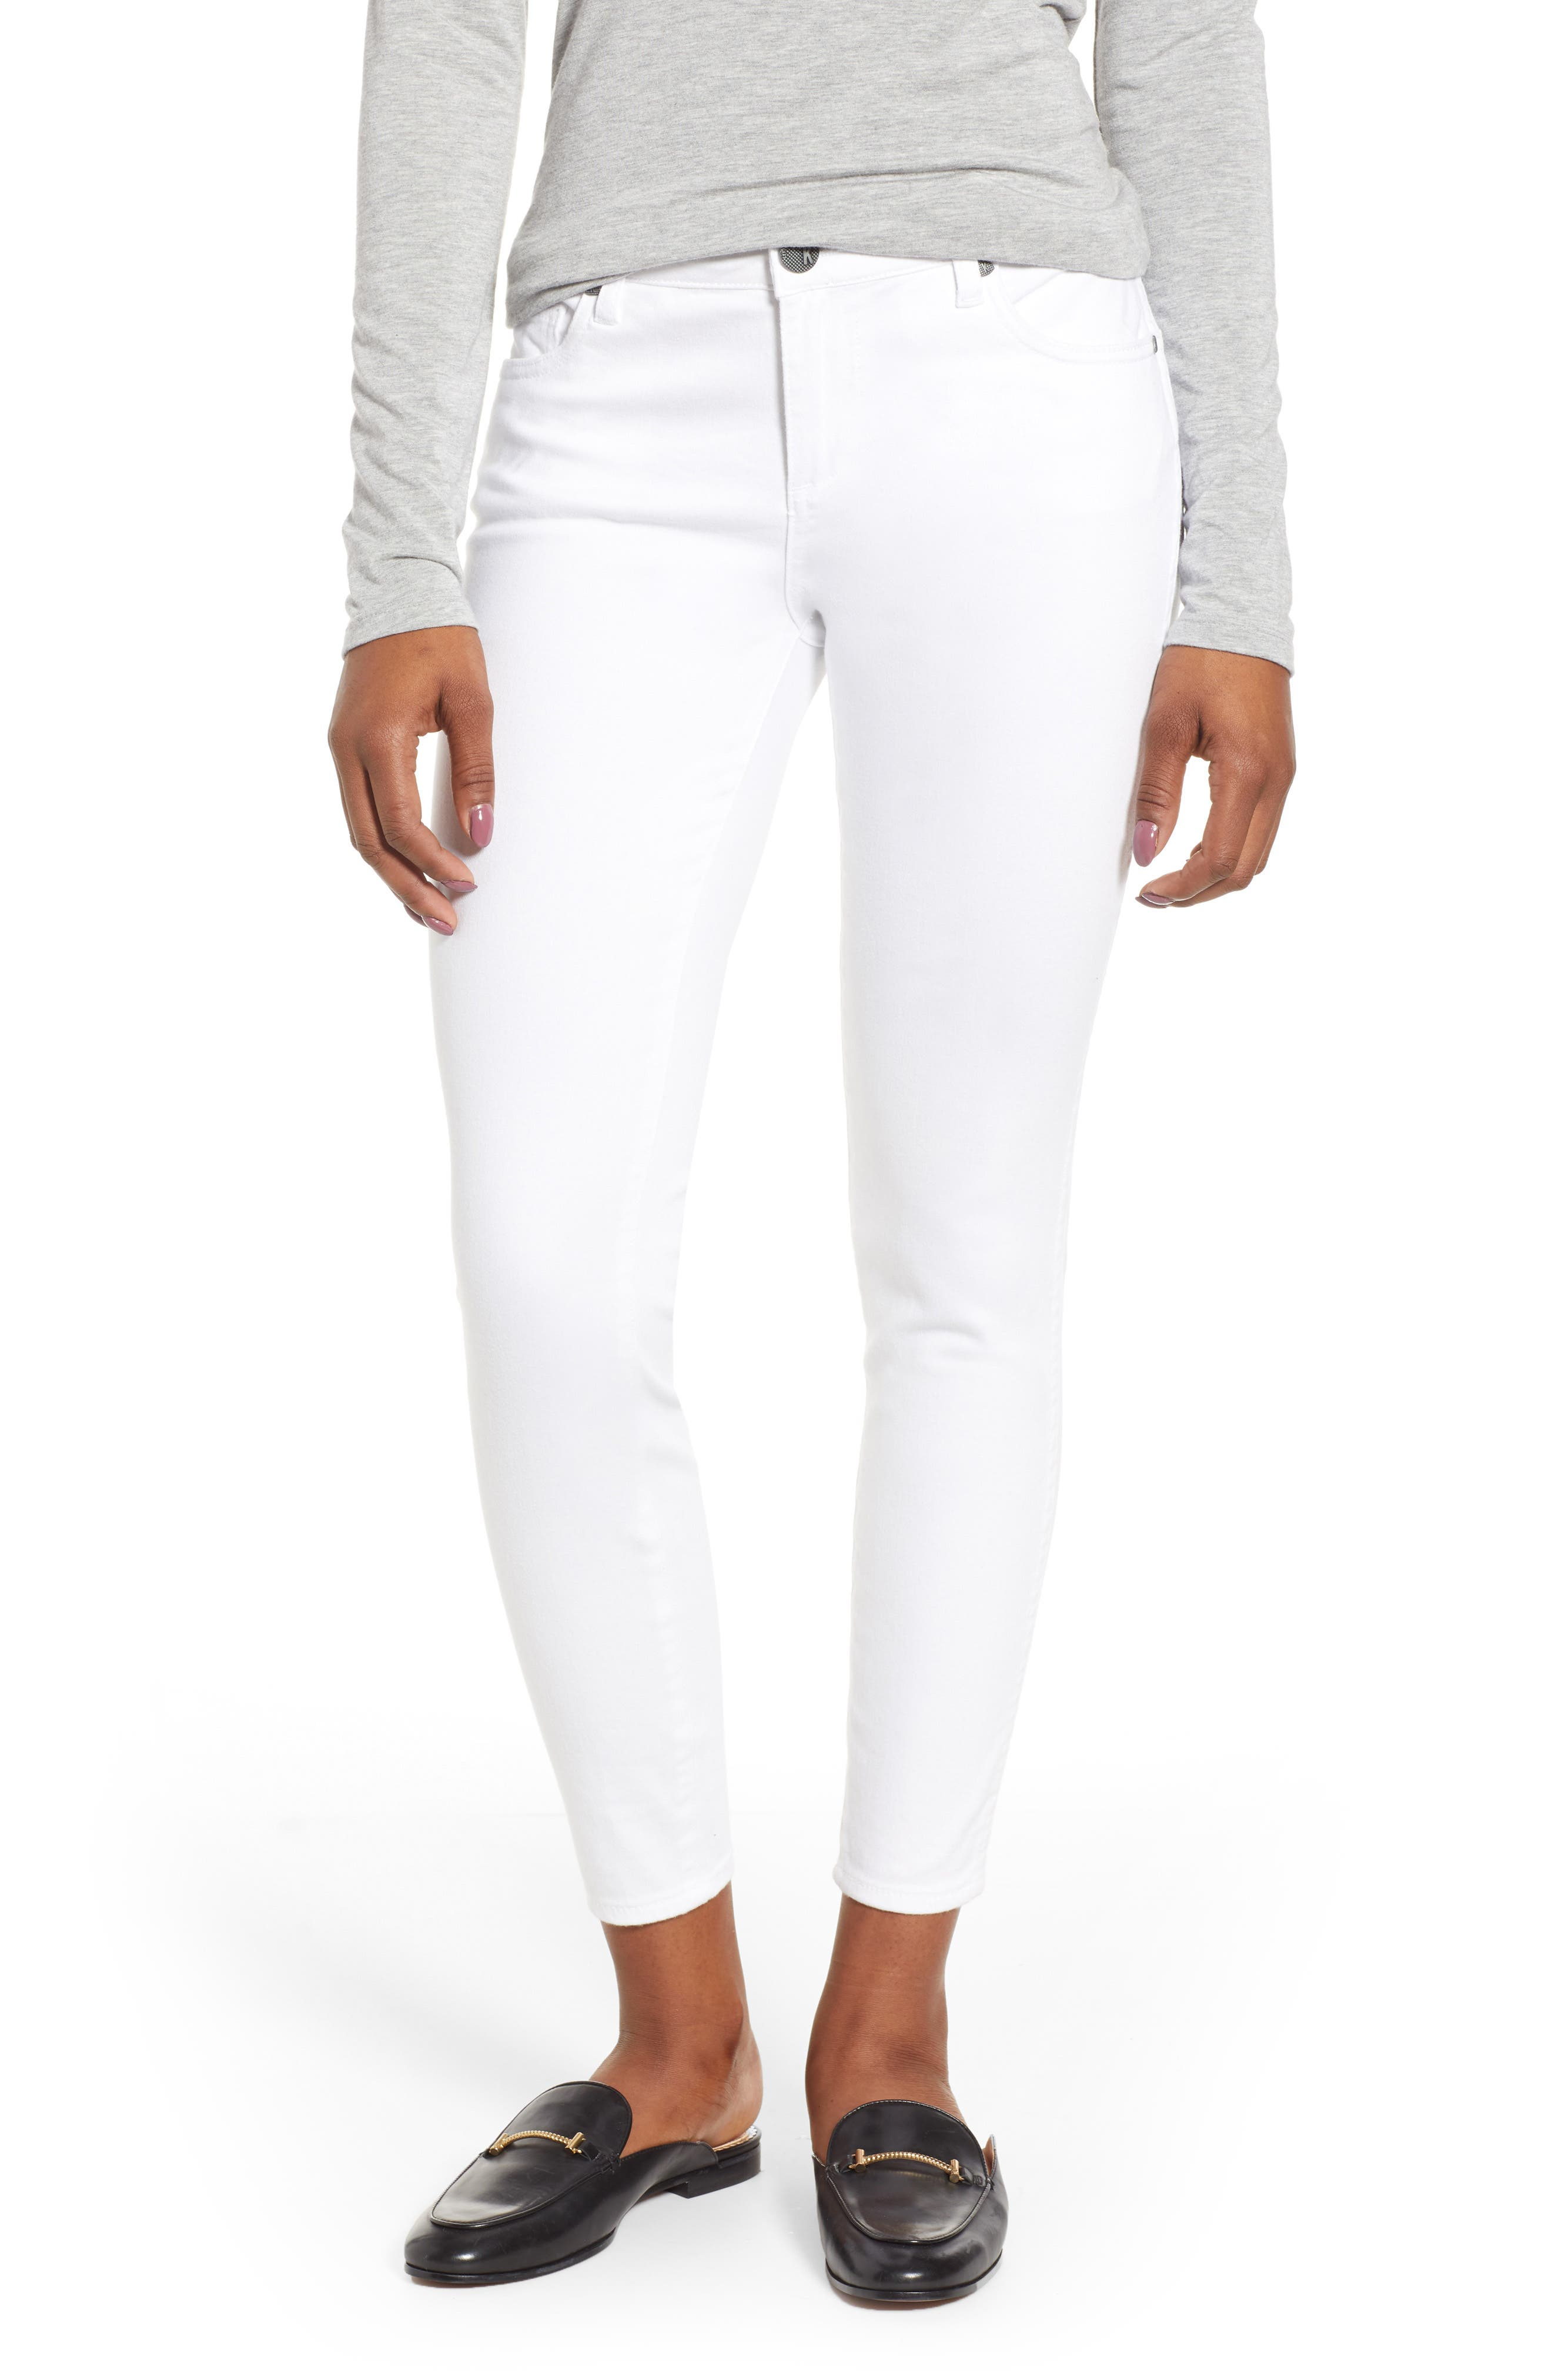 Kut From The Kloth Donna Ankle Skinny Jeans, White